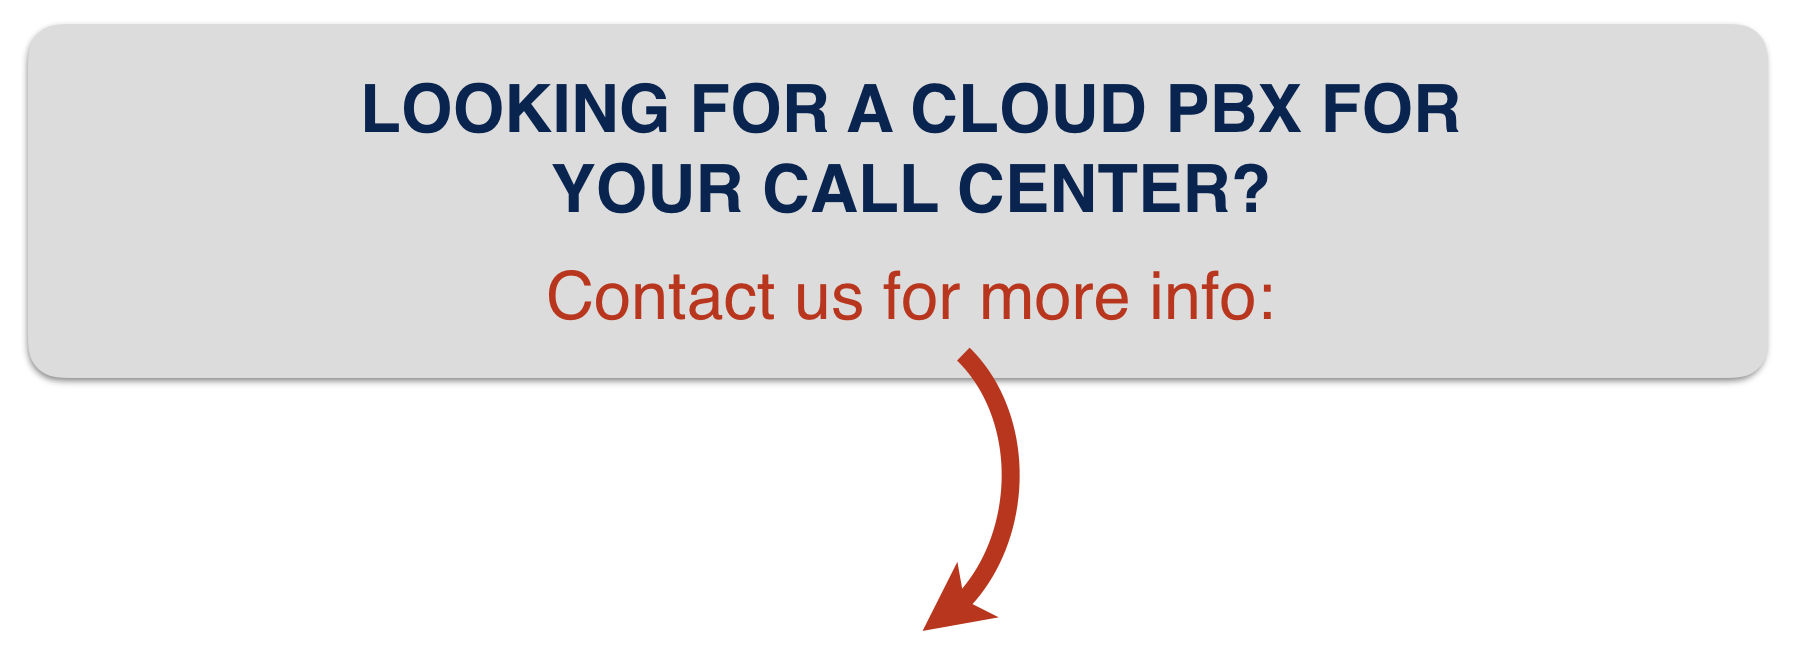 LOOKING FOR A CLOUD PBX FOR YOUR CALL CENTER? Contact us!